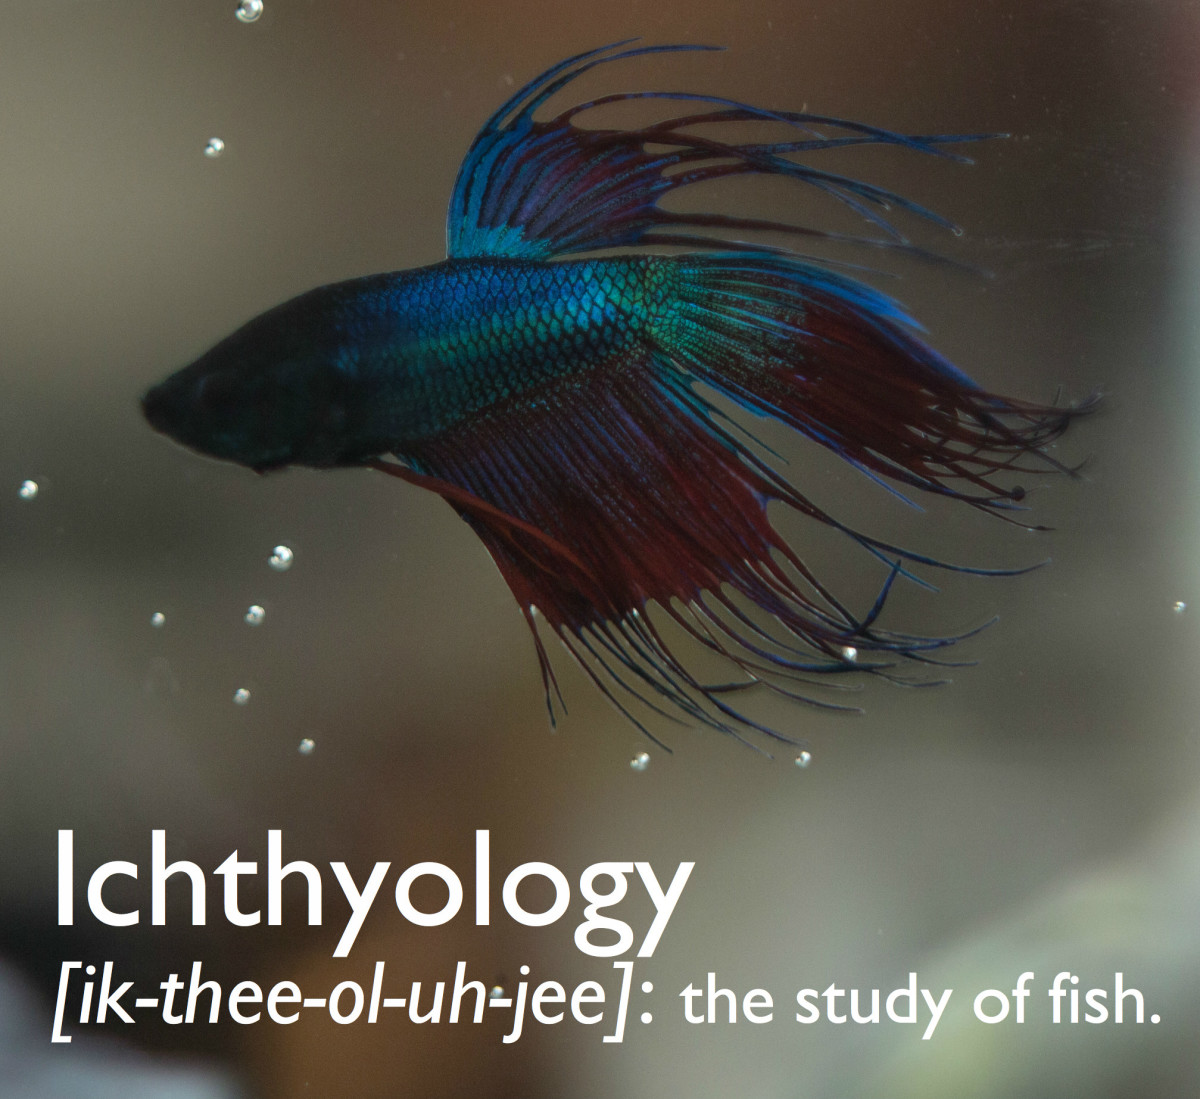 Ichthyology is the study of fish.